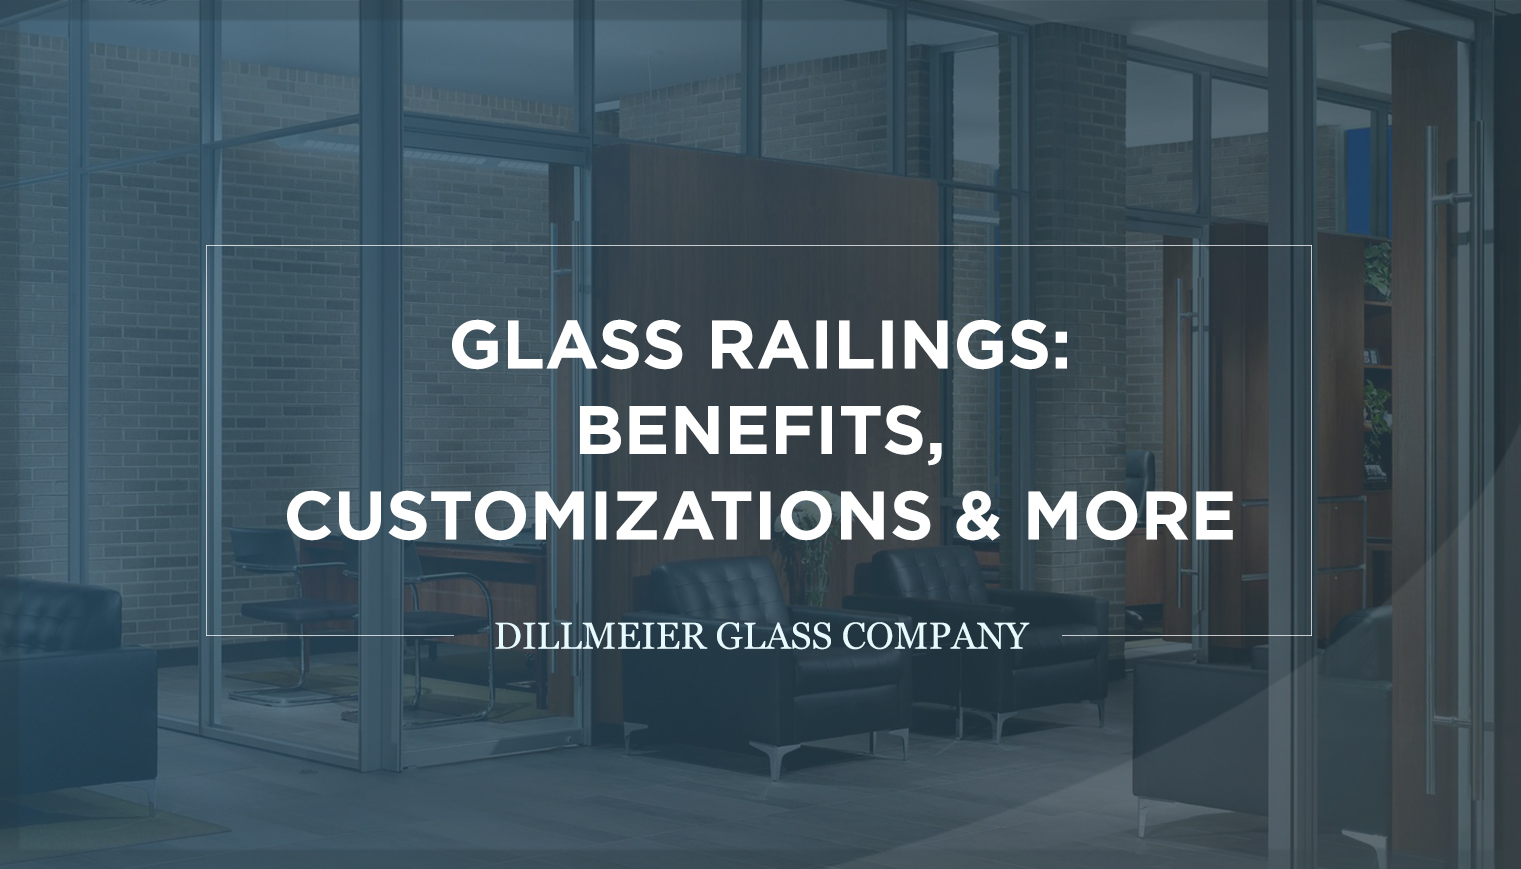 Glass Railings: Benefits, Customizations & More